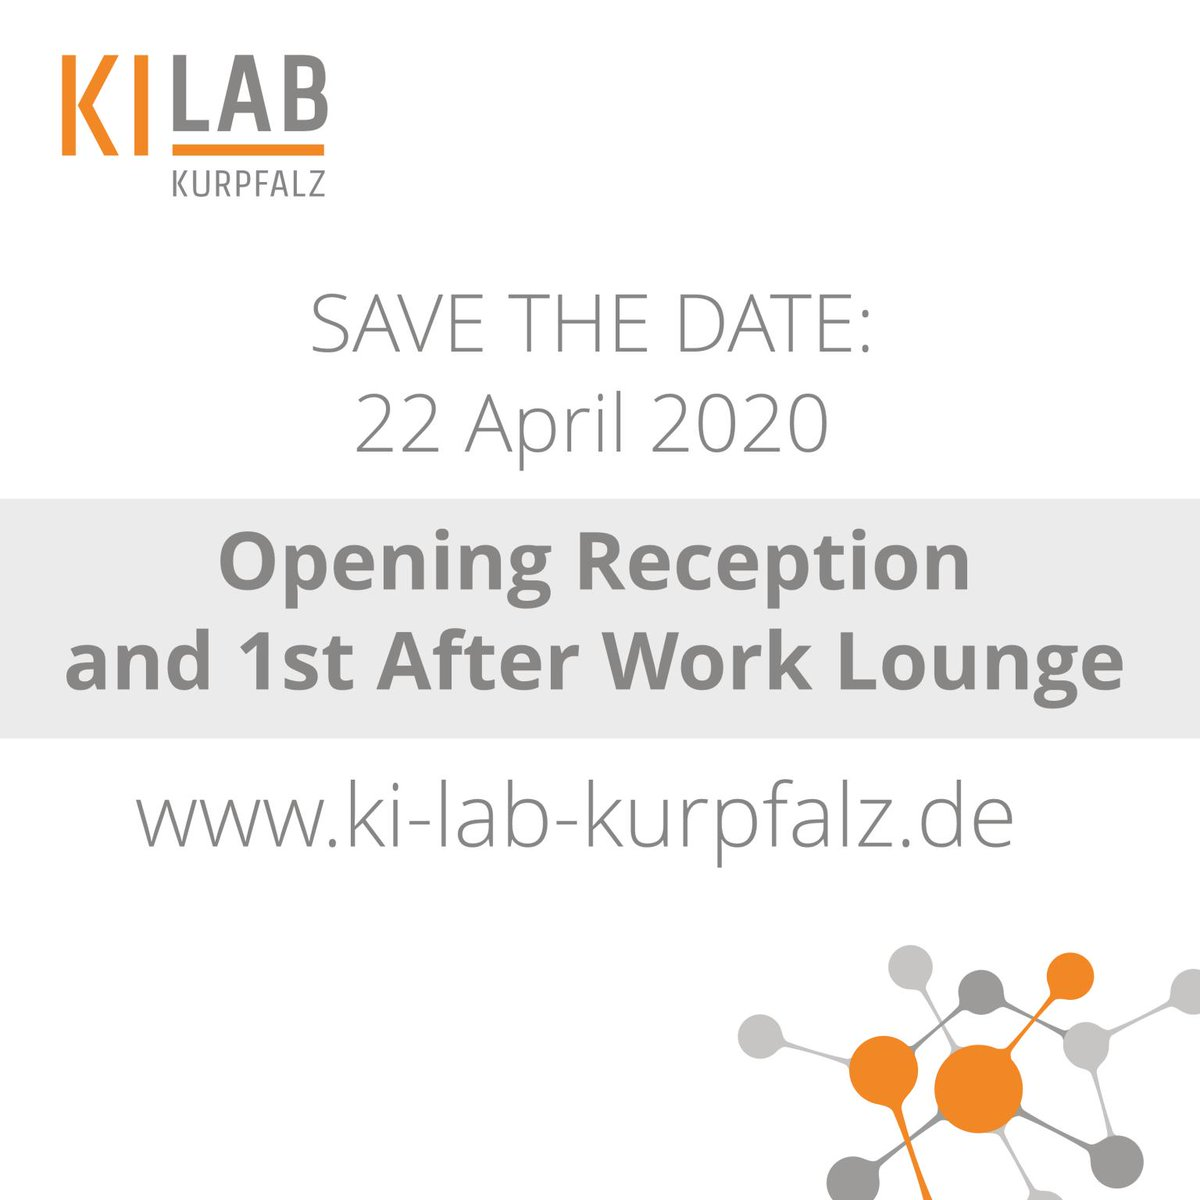 Curious about how #AI will change your #business? Do you have an idea about an AI use case? Join our KI-Lab Kurpfalz in Heidelberg! We are looking for companies & individuals to create an awesome network! Get your calendar out & save the date  #AI #MachineLearning #DeepLearningpic.twitter.com/JiRBq6MkWX